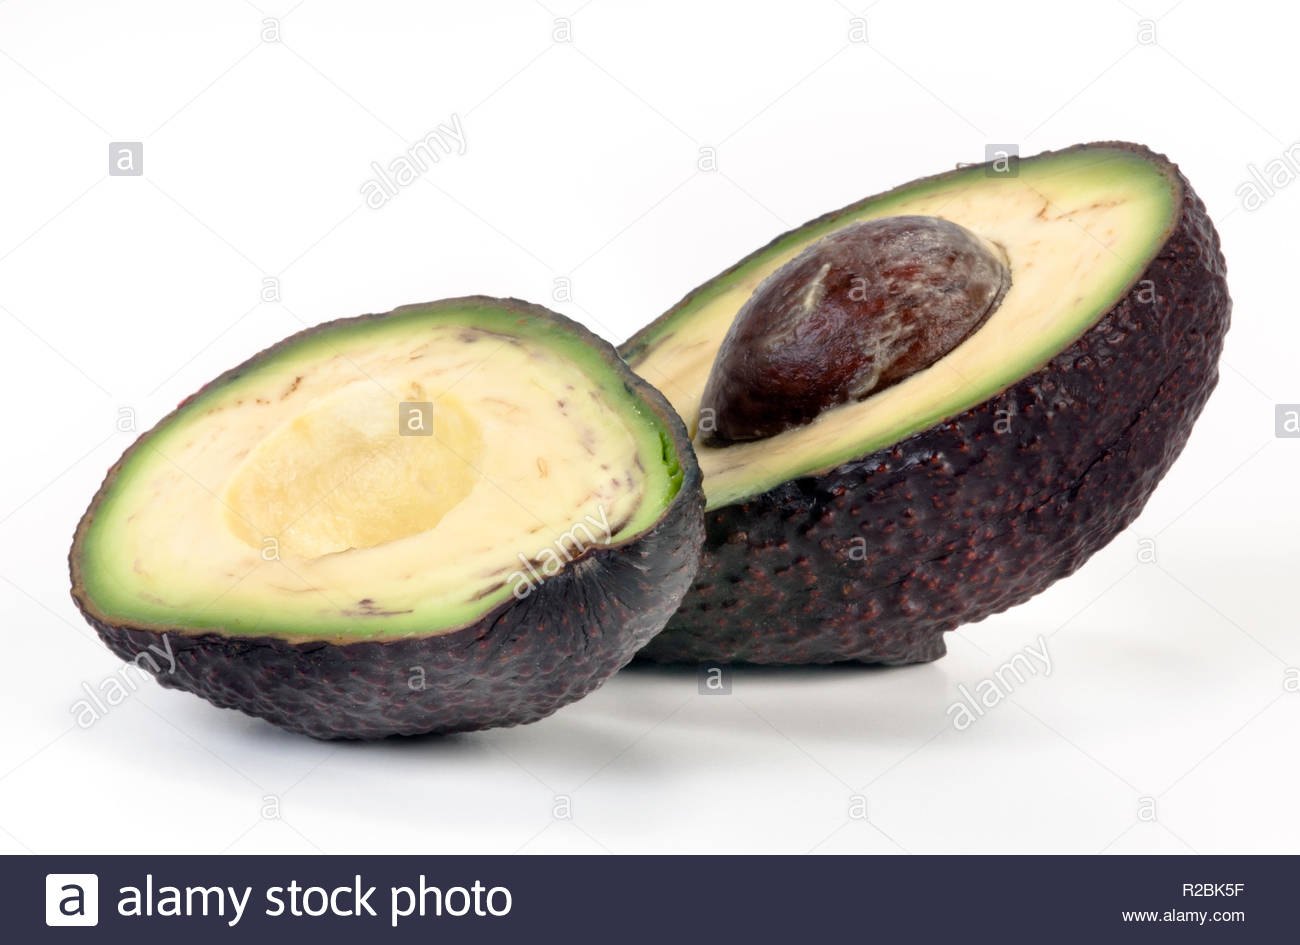 Halved Avocado with pip isolated on white background. Stock Photo